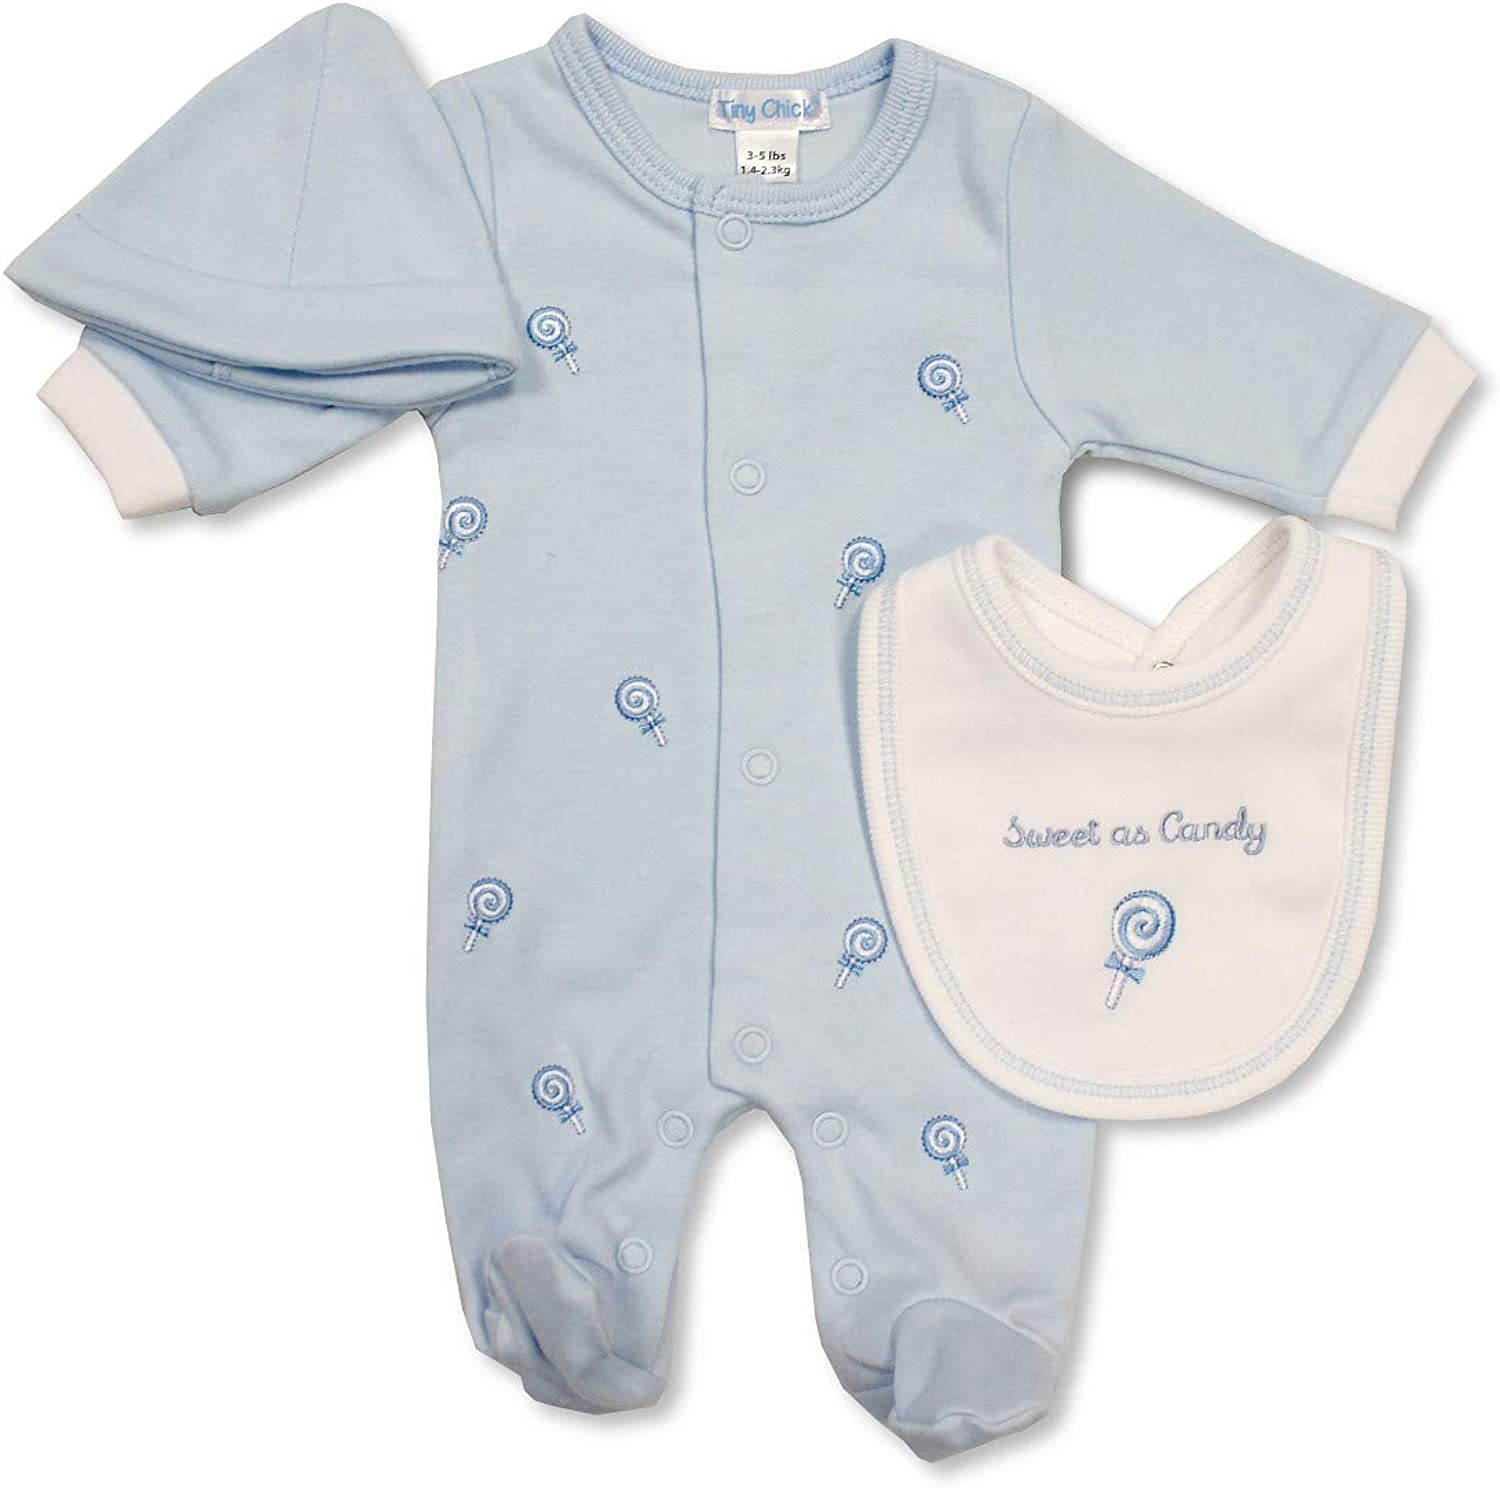 My Little Chick Tiny Baby Premature Blue Boys Babygrow Bib Hat Candy All in One 5-8 lbs 491